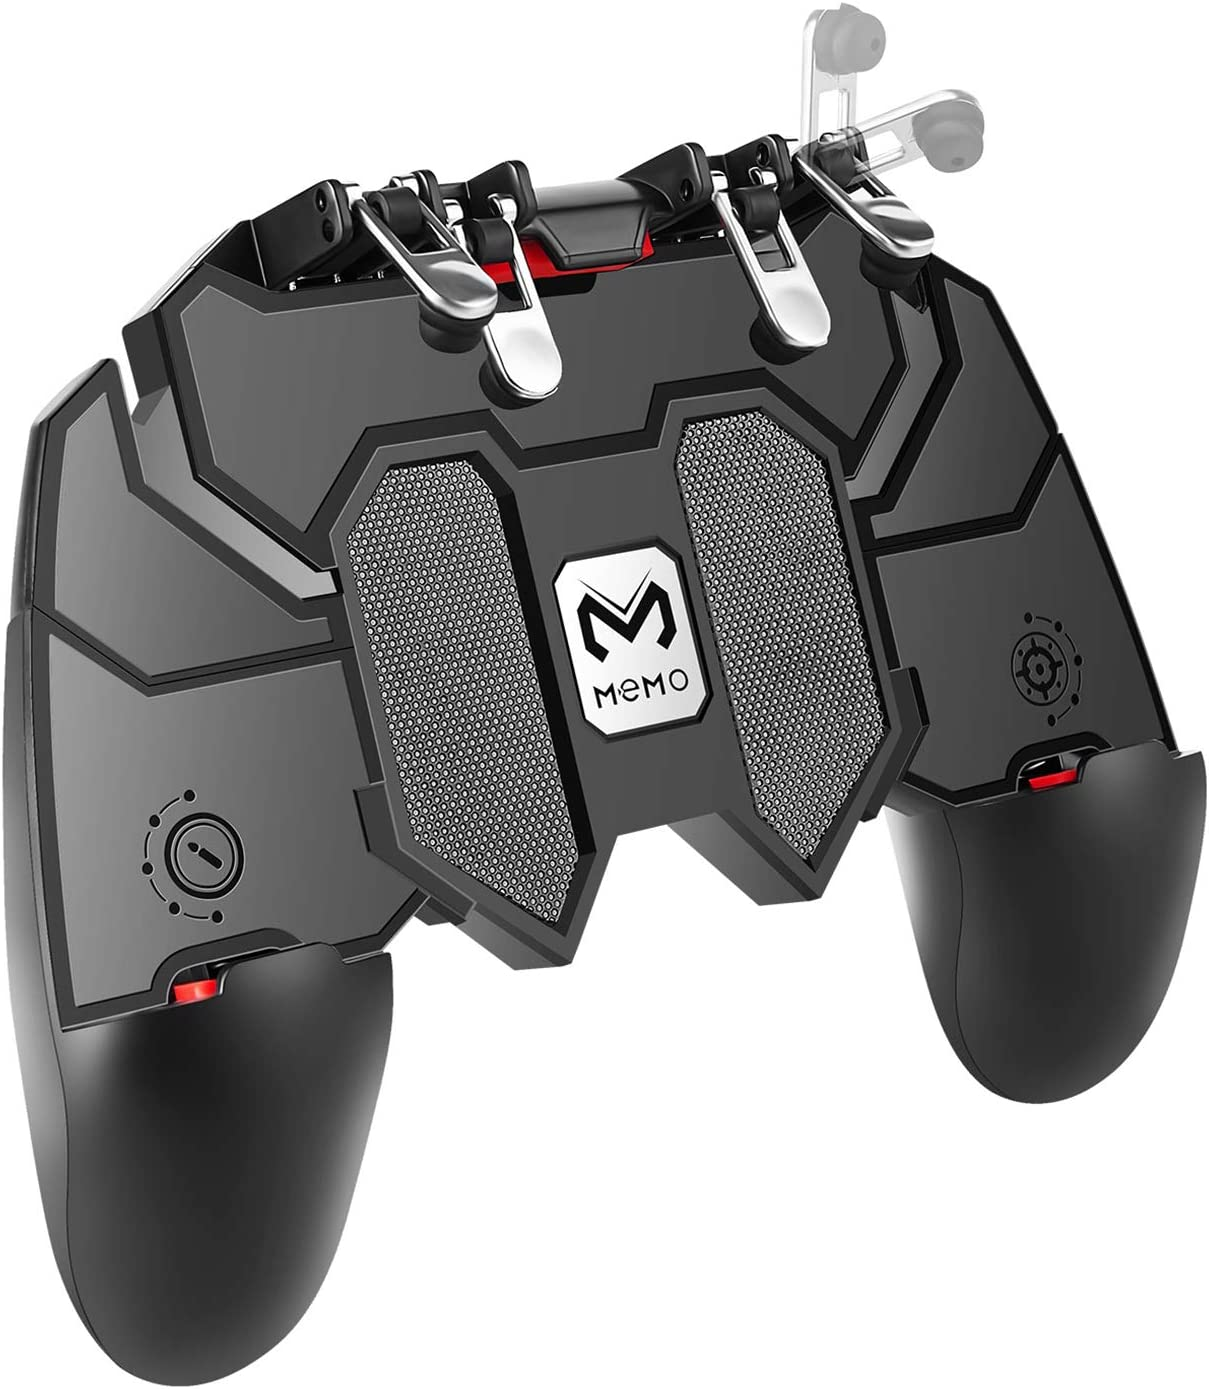 """DELAM Mobile Game Controller with L1R1 L2R2 Triggers, PUBG Mobile Controller 6 Fingers Operation, Joystick Remote Grip Shooting Aim Keys for 4.7-6.5"""" iPhone Android iOS Cellphone Gamepad Accessories"""